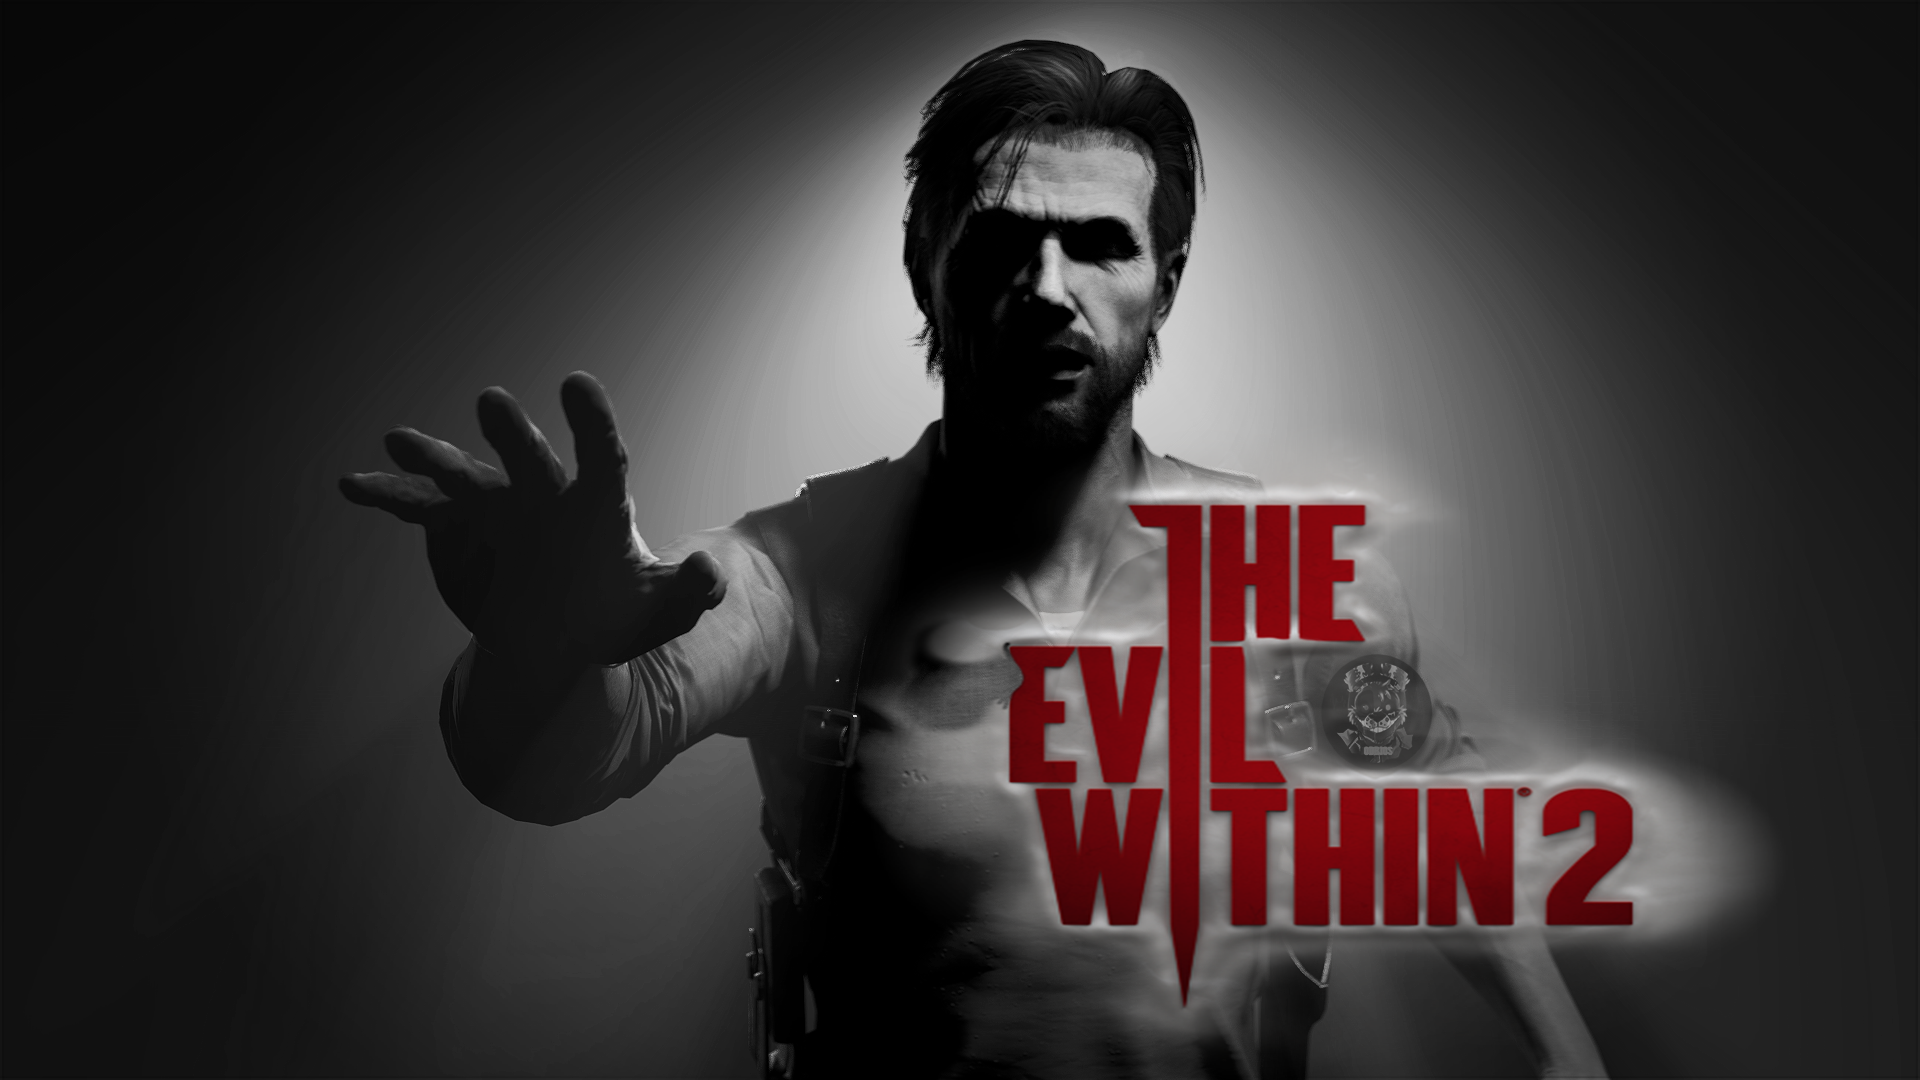 The Evil Within 2 Wallpaper Posted By Sarah Johnson